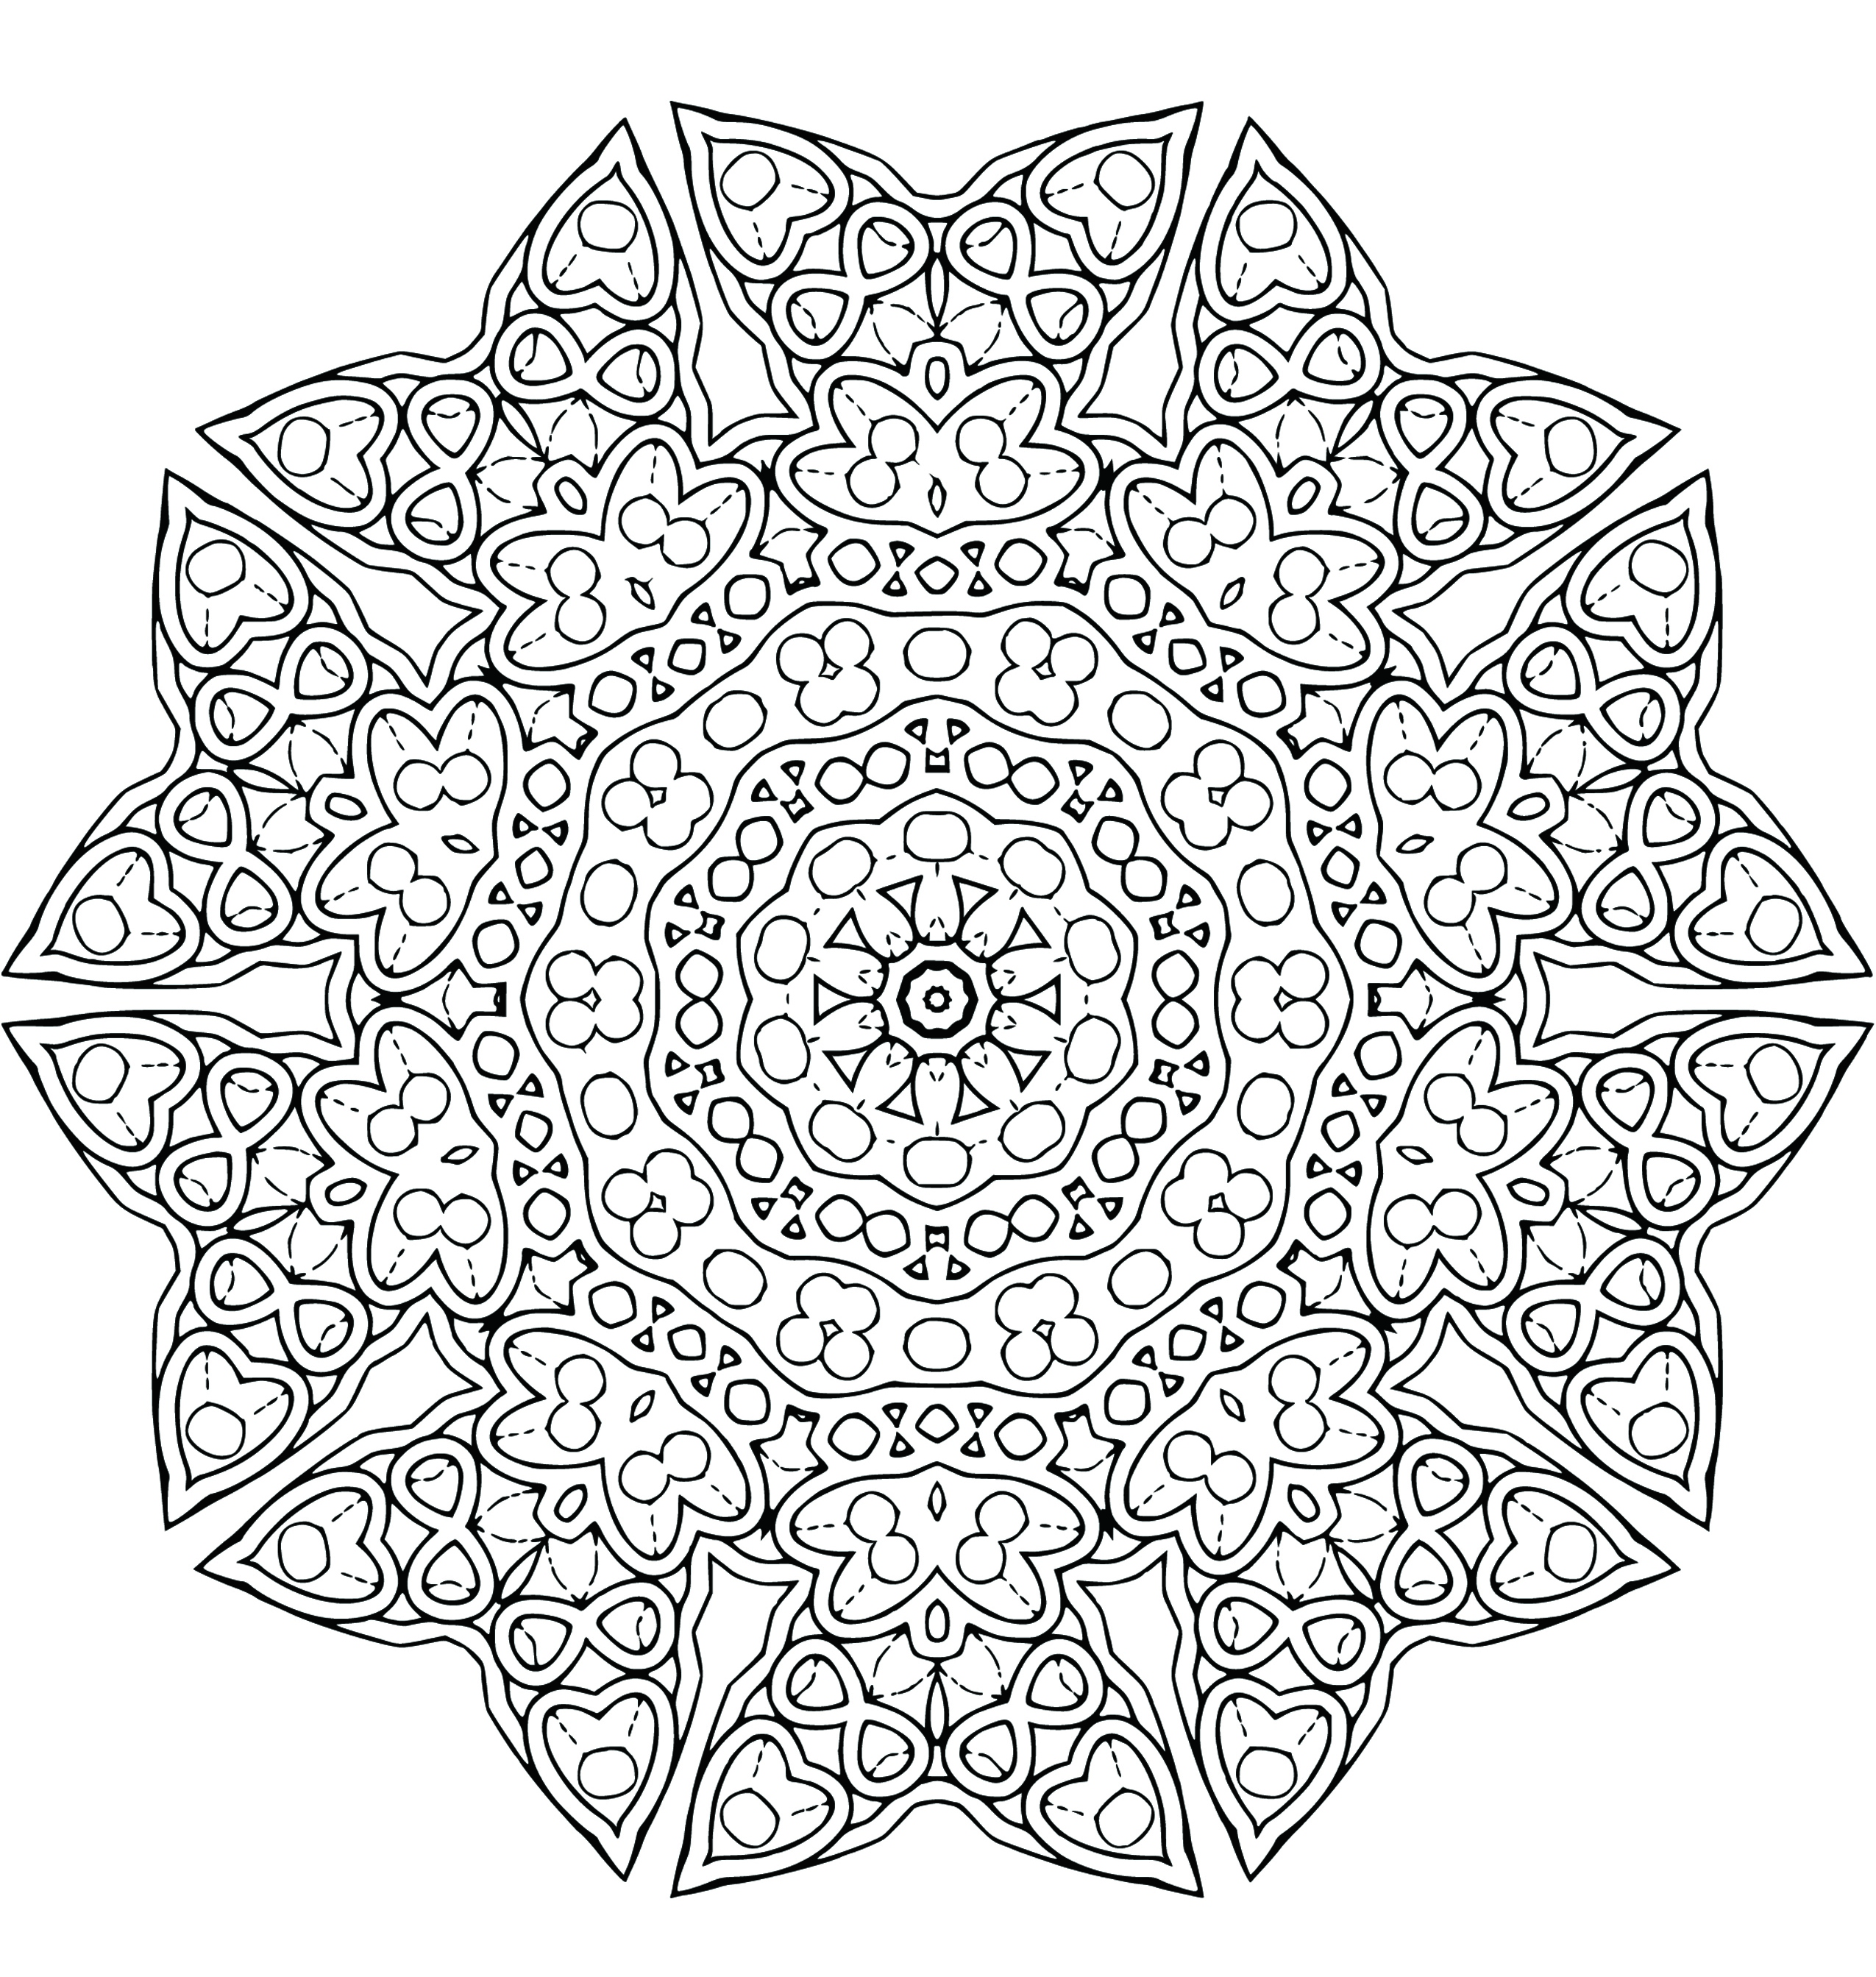 mandala-wonders-coloring-sheet-for-adults